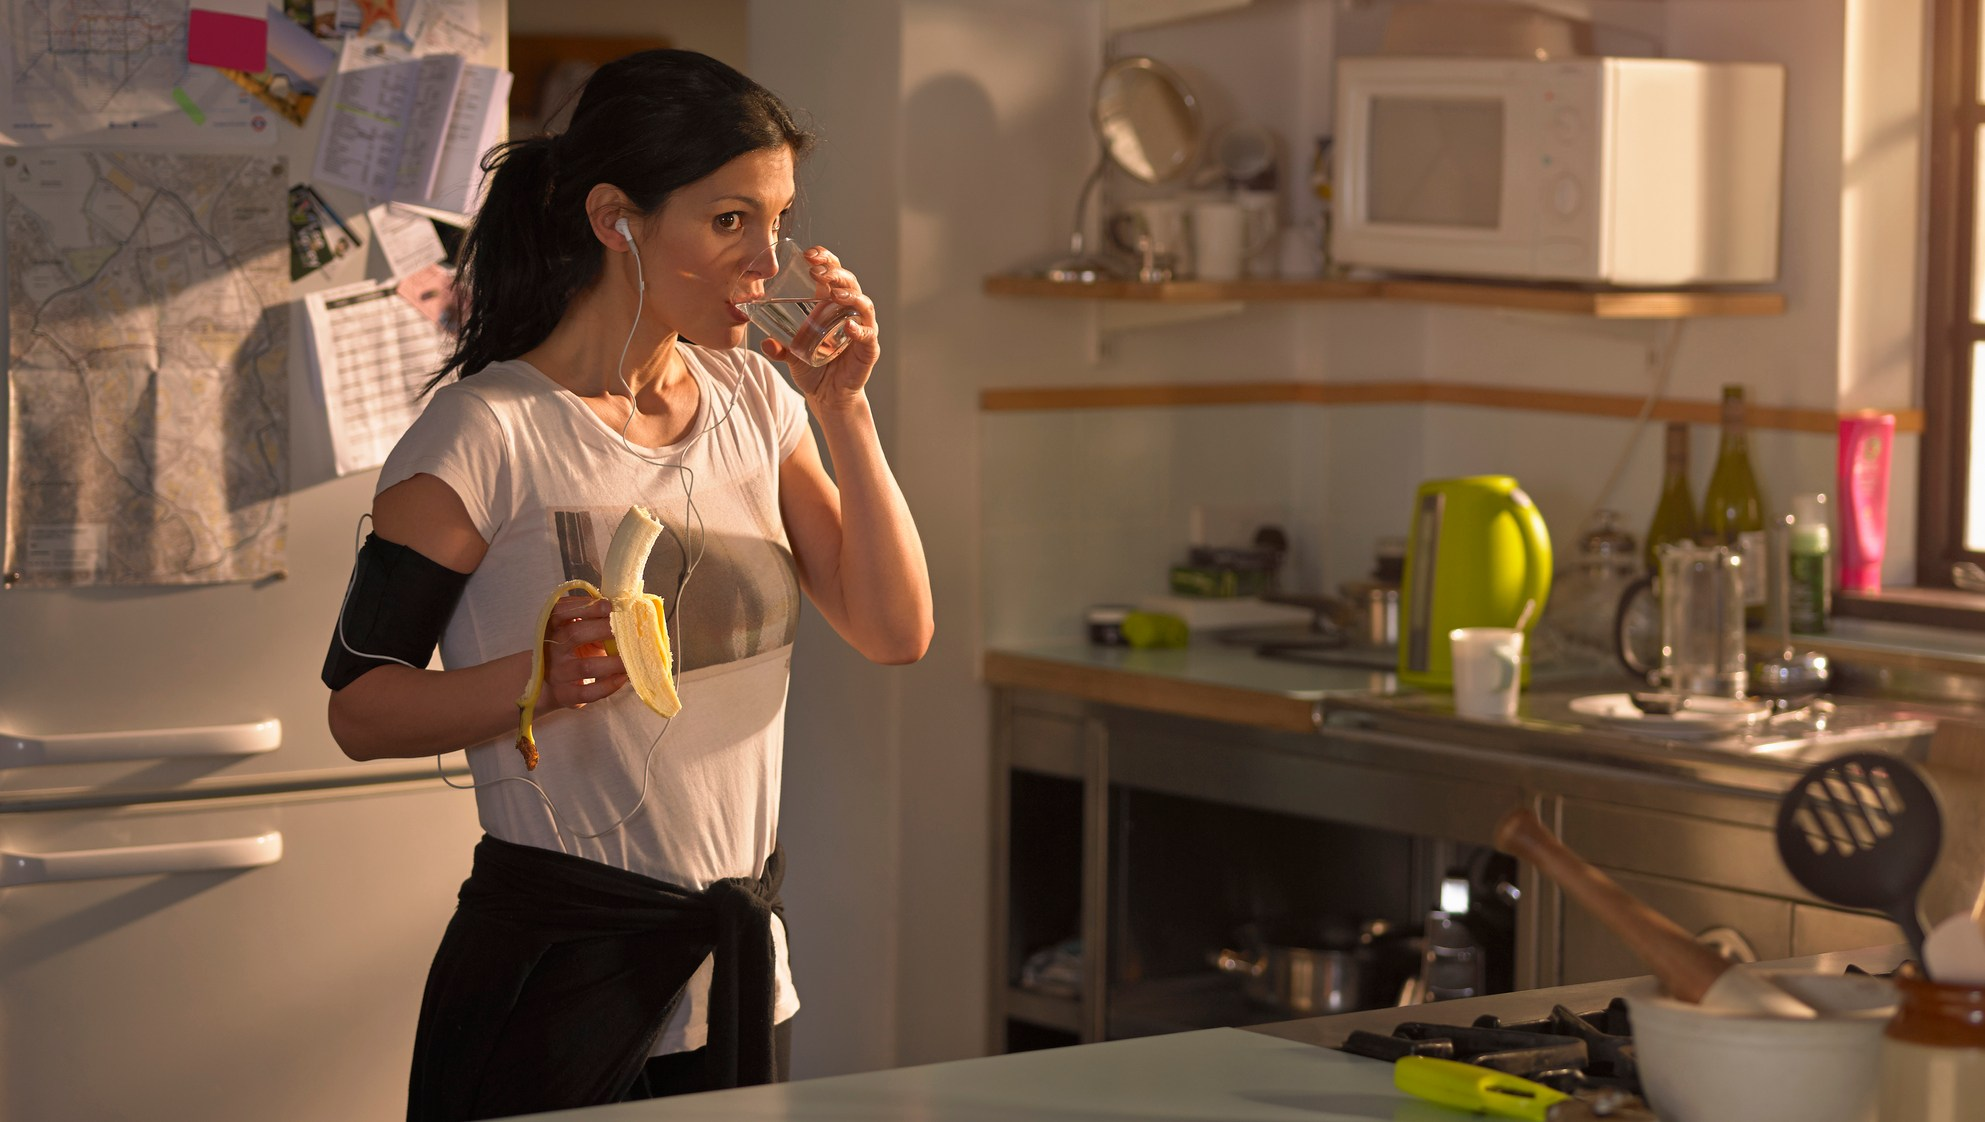 Woman in the kitchen preparing for run